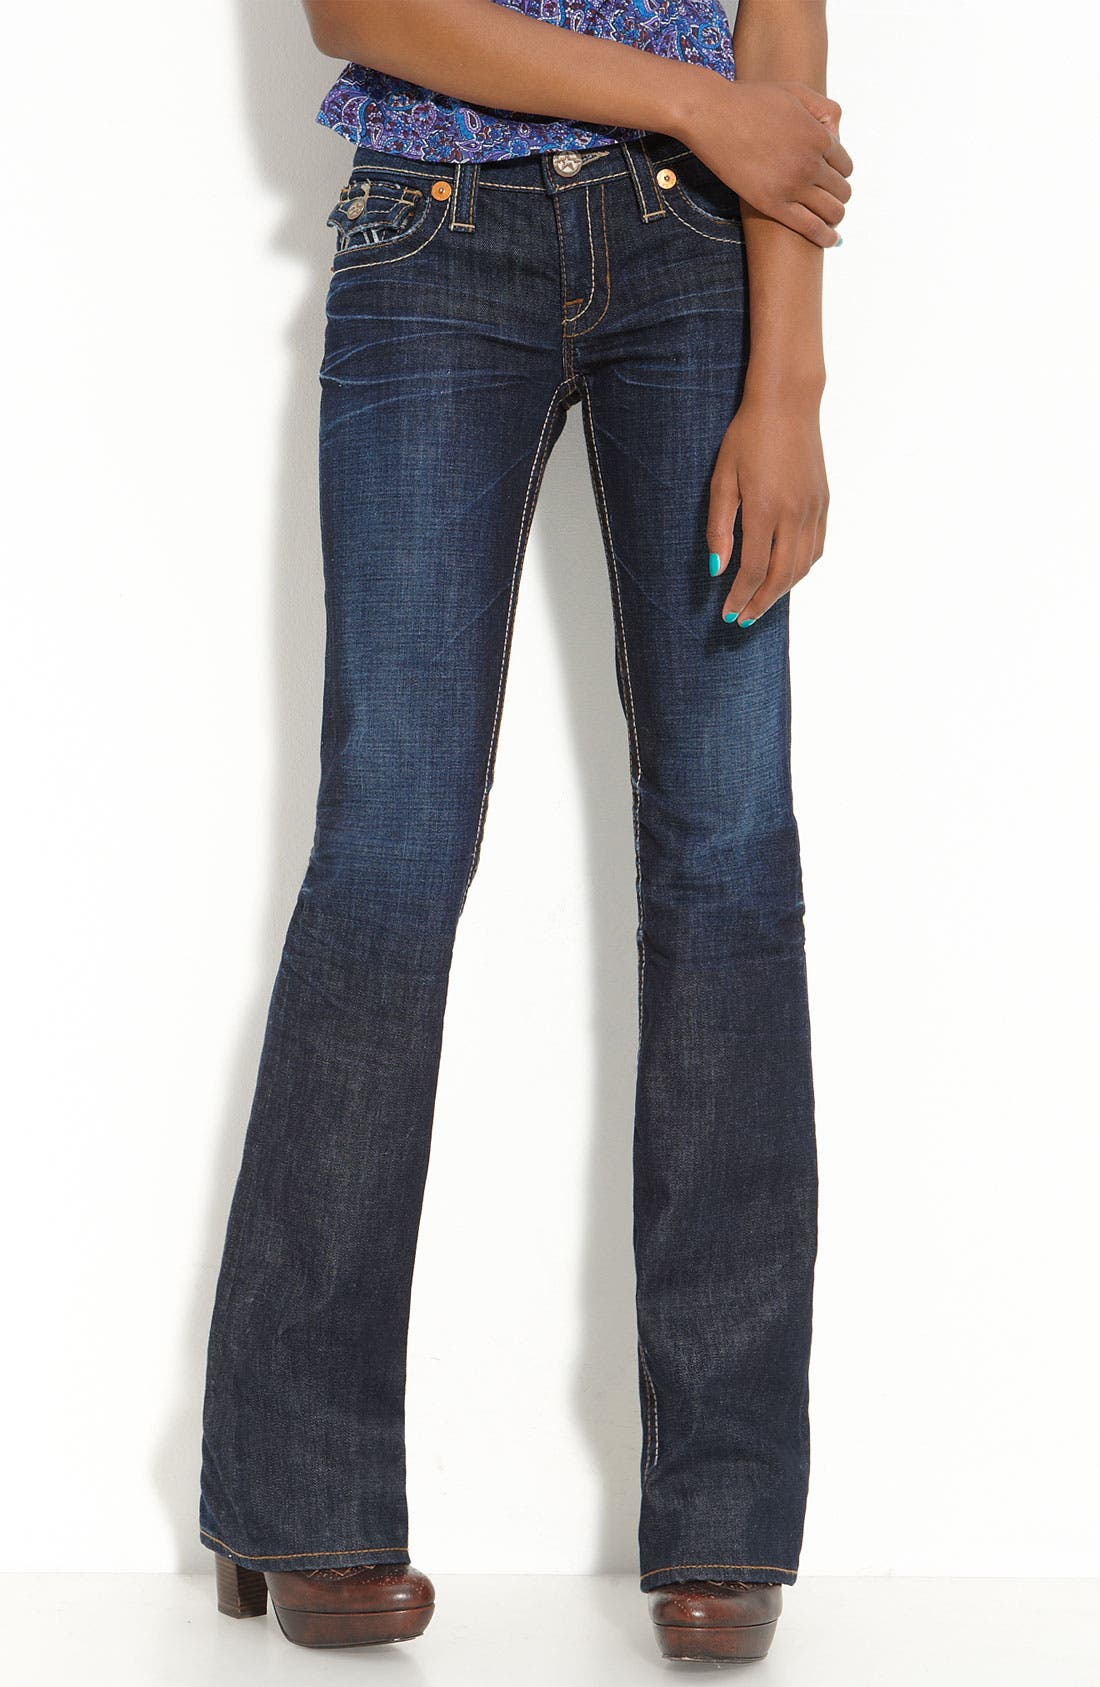 Alternate Image 1 Selected - Big Star 'Liv' Flap Pocket Bootcut Jeans (Juniors Long)